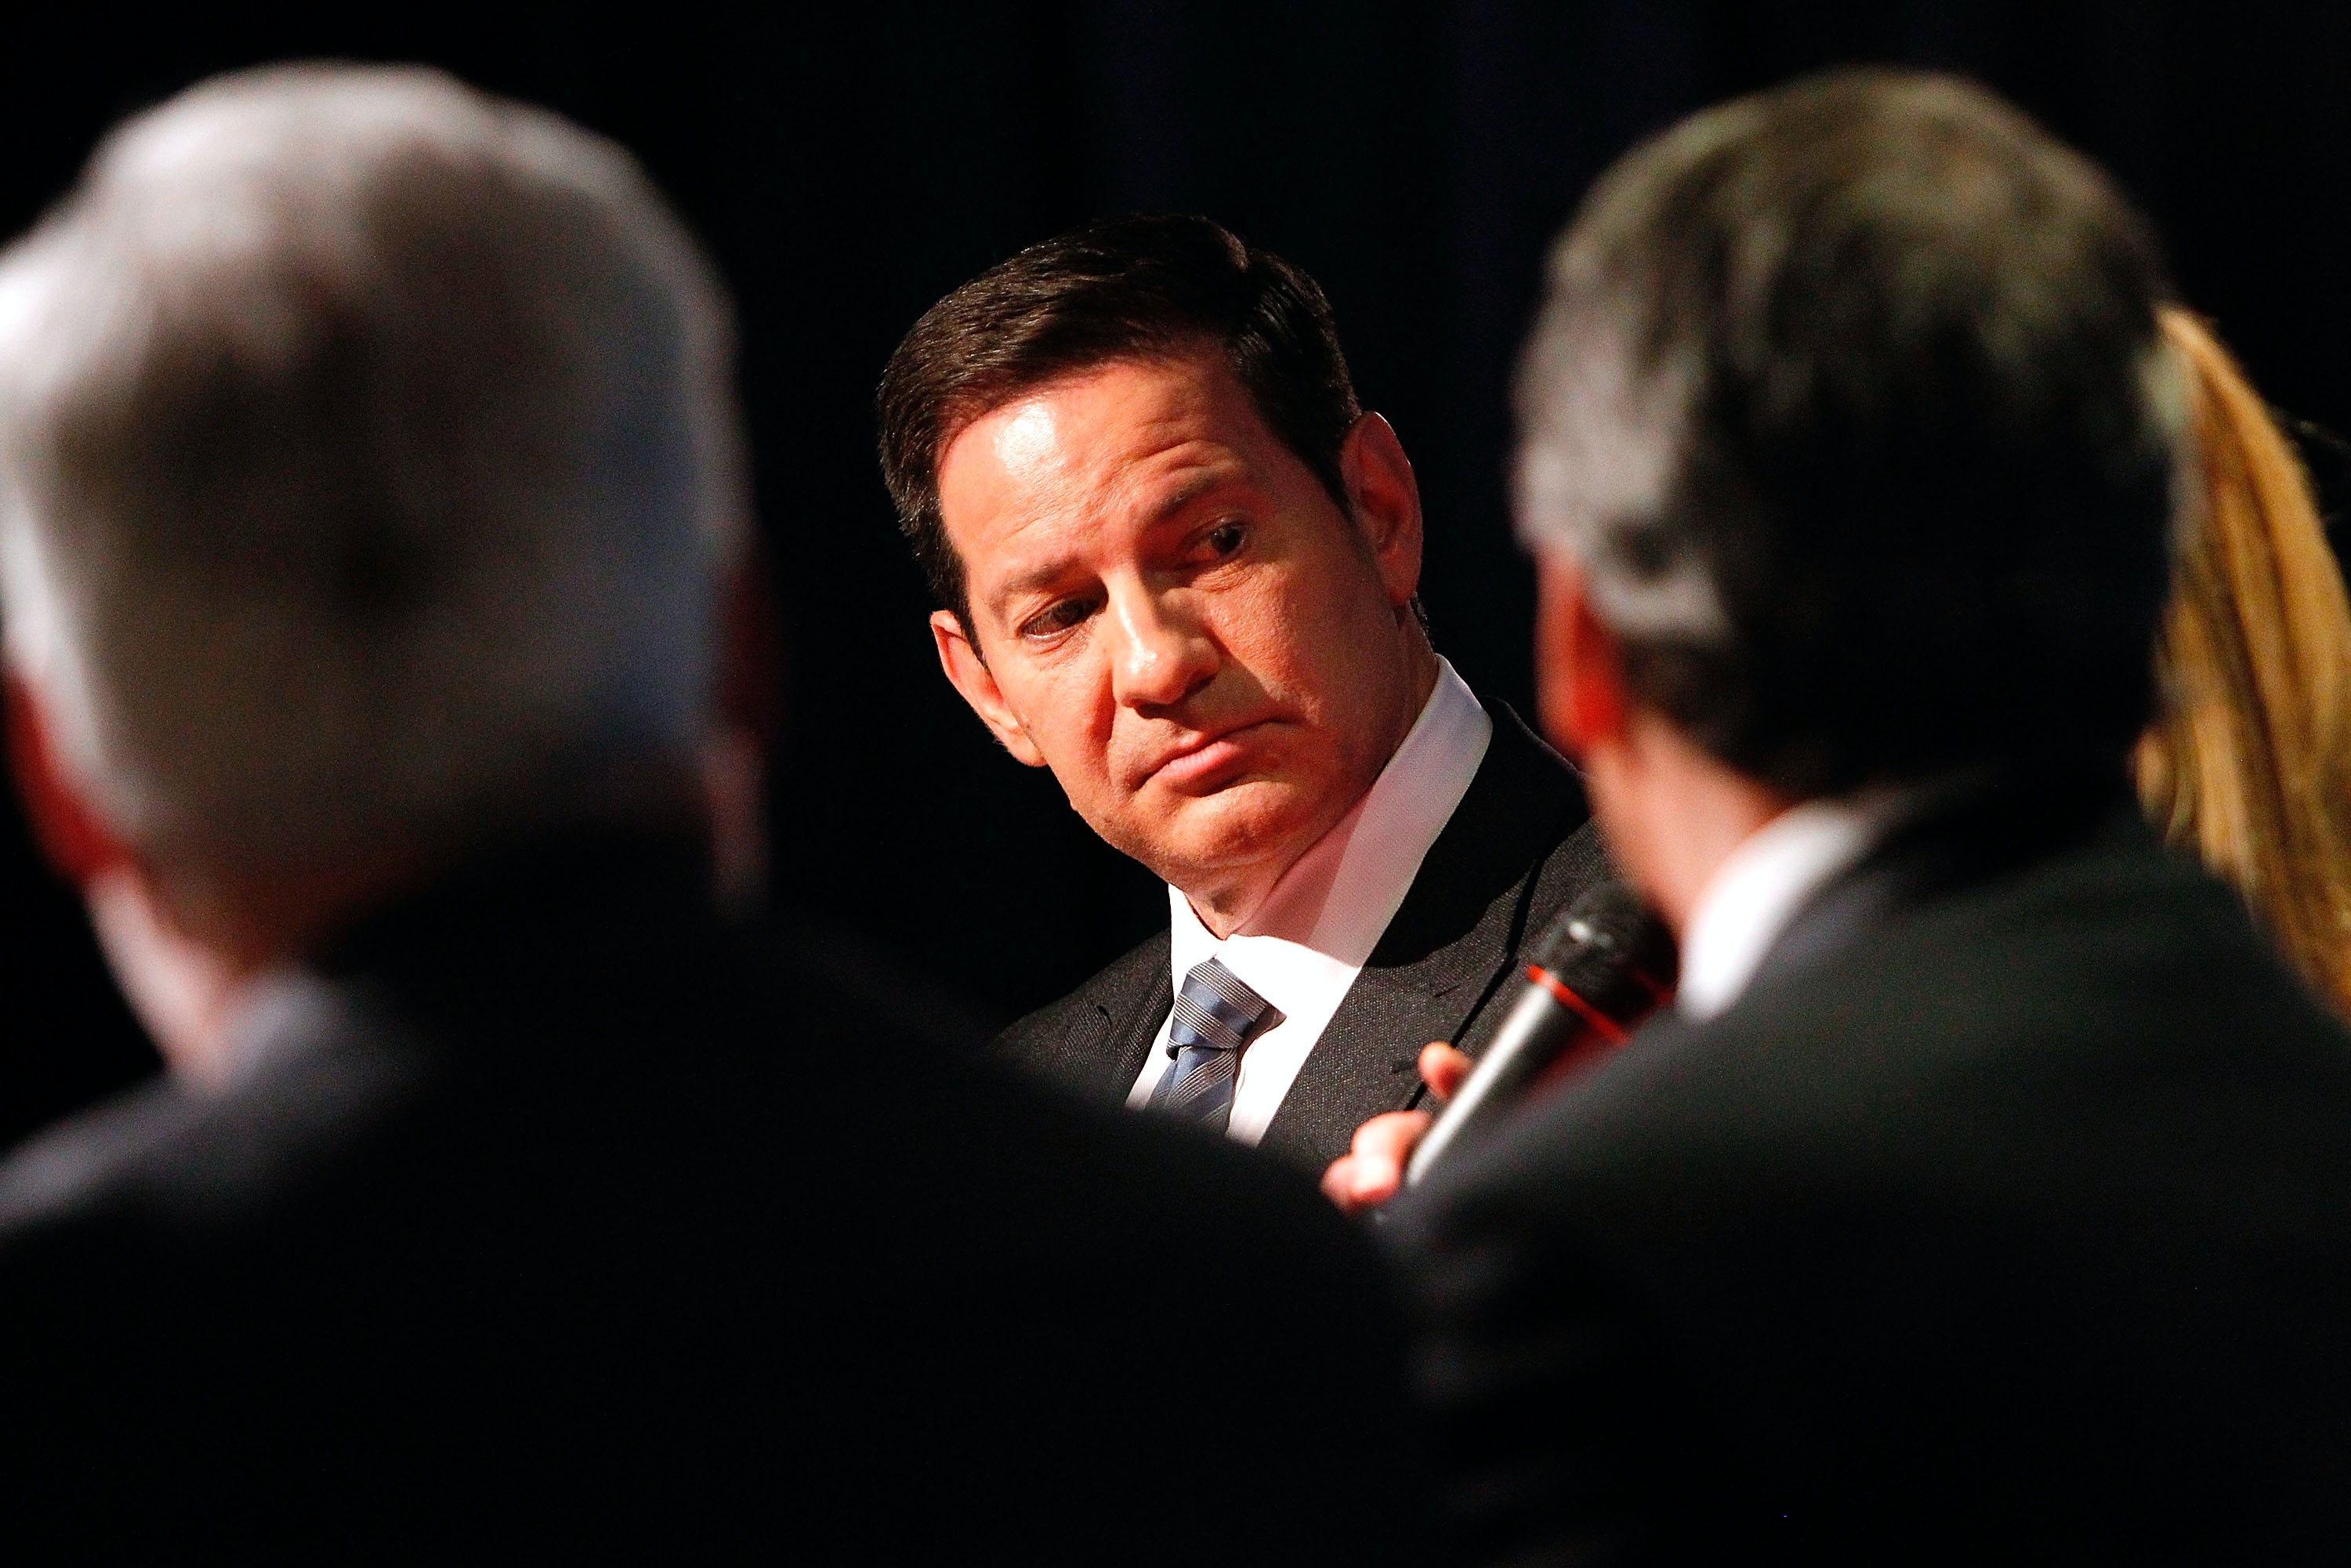 Journalist Mark Halperin is accused of sexually harassing five women